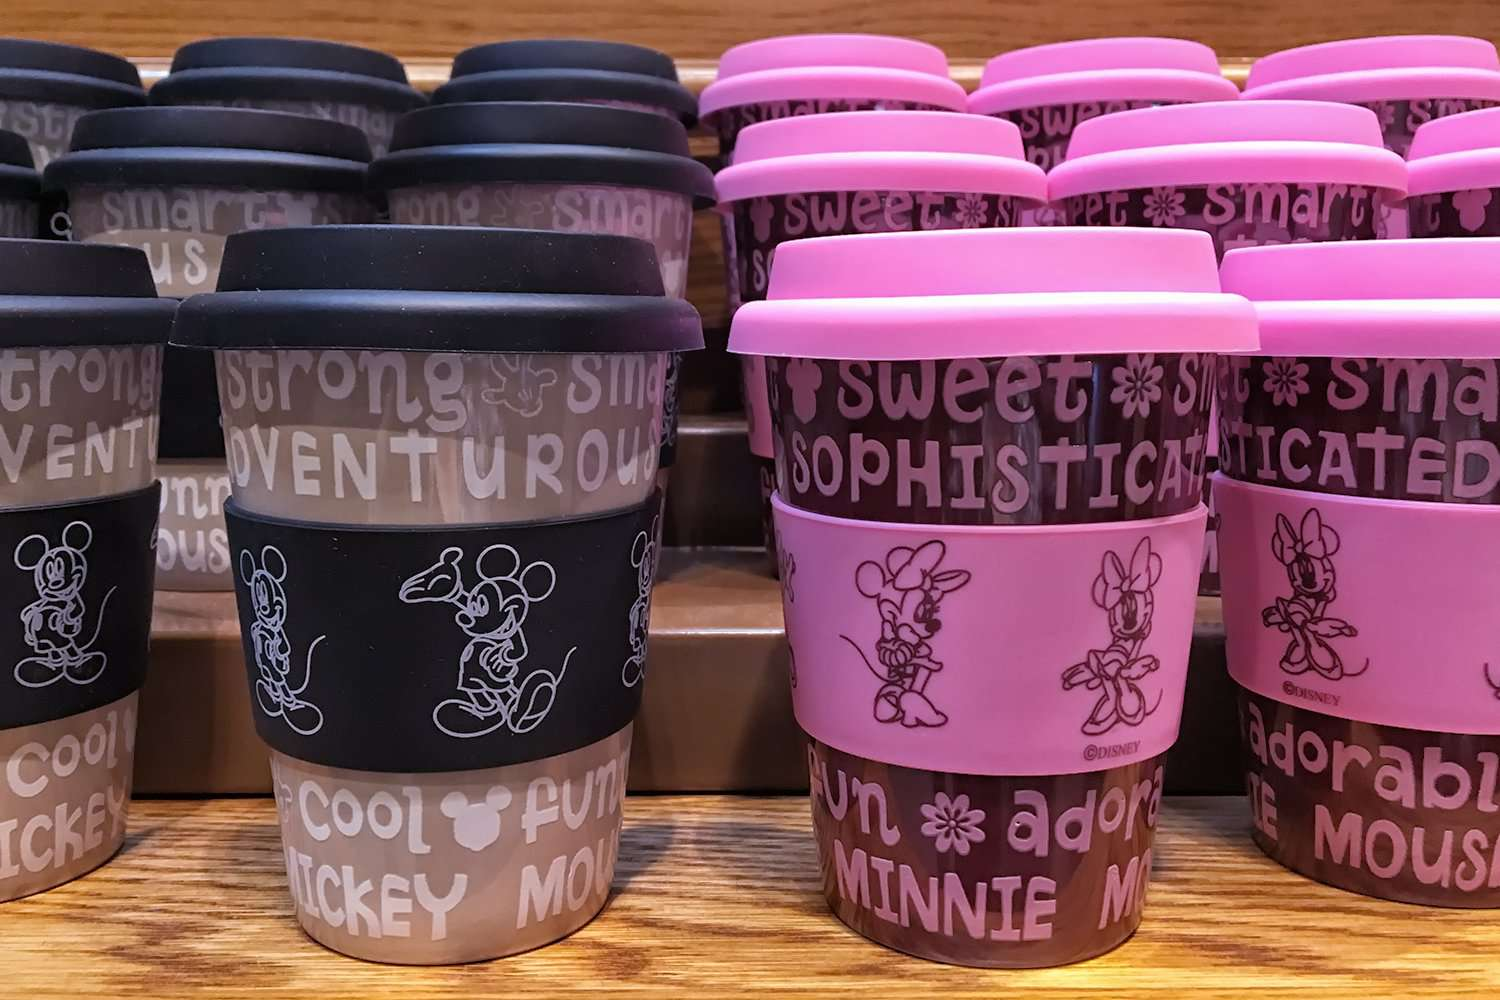 The 9 Best Souvenirs to Buy at Disneyland